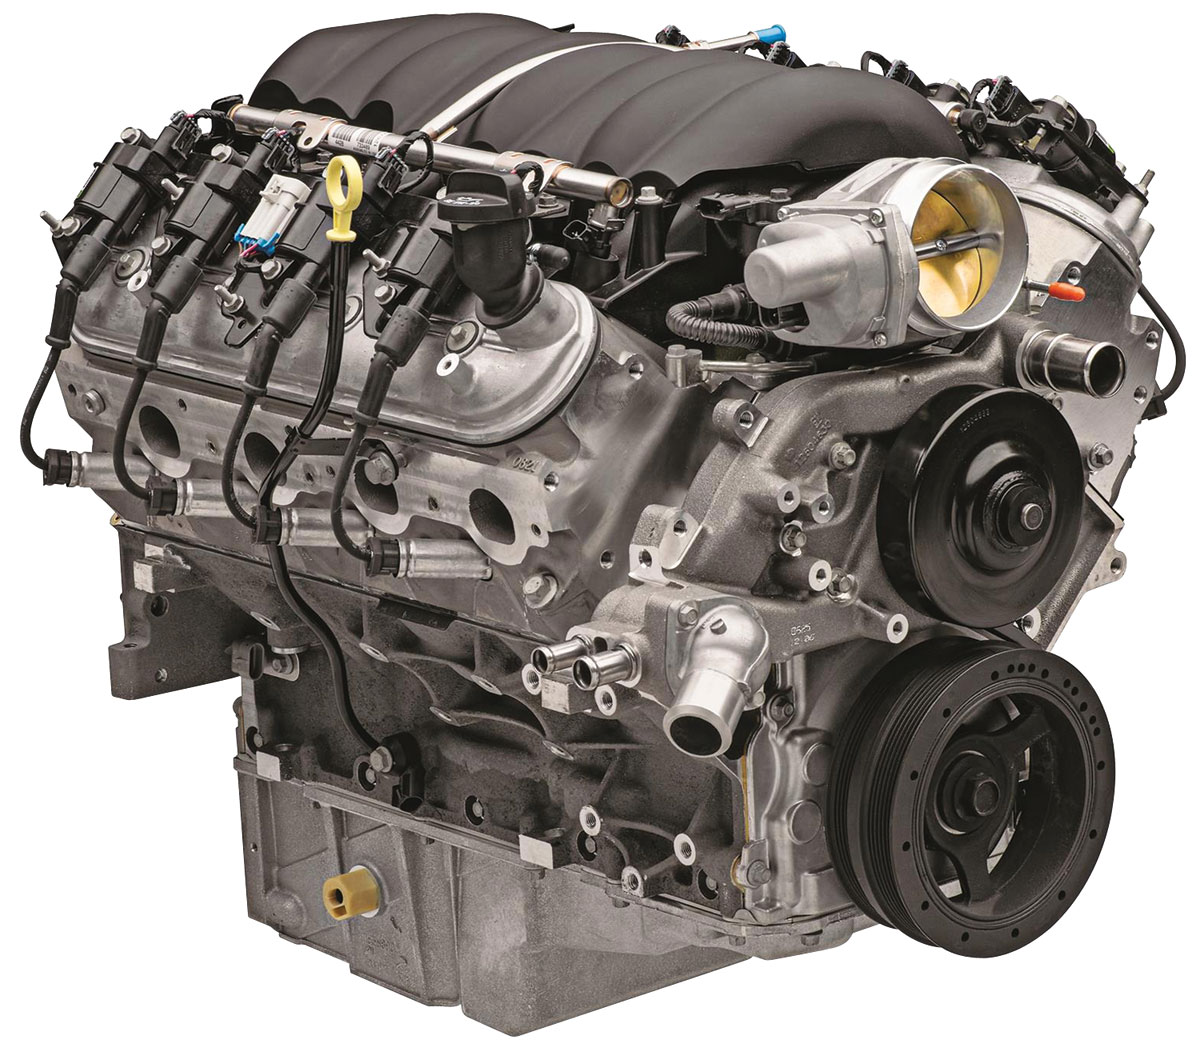 Photo of Crate engine, GM 6.2L LS3